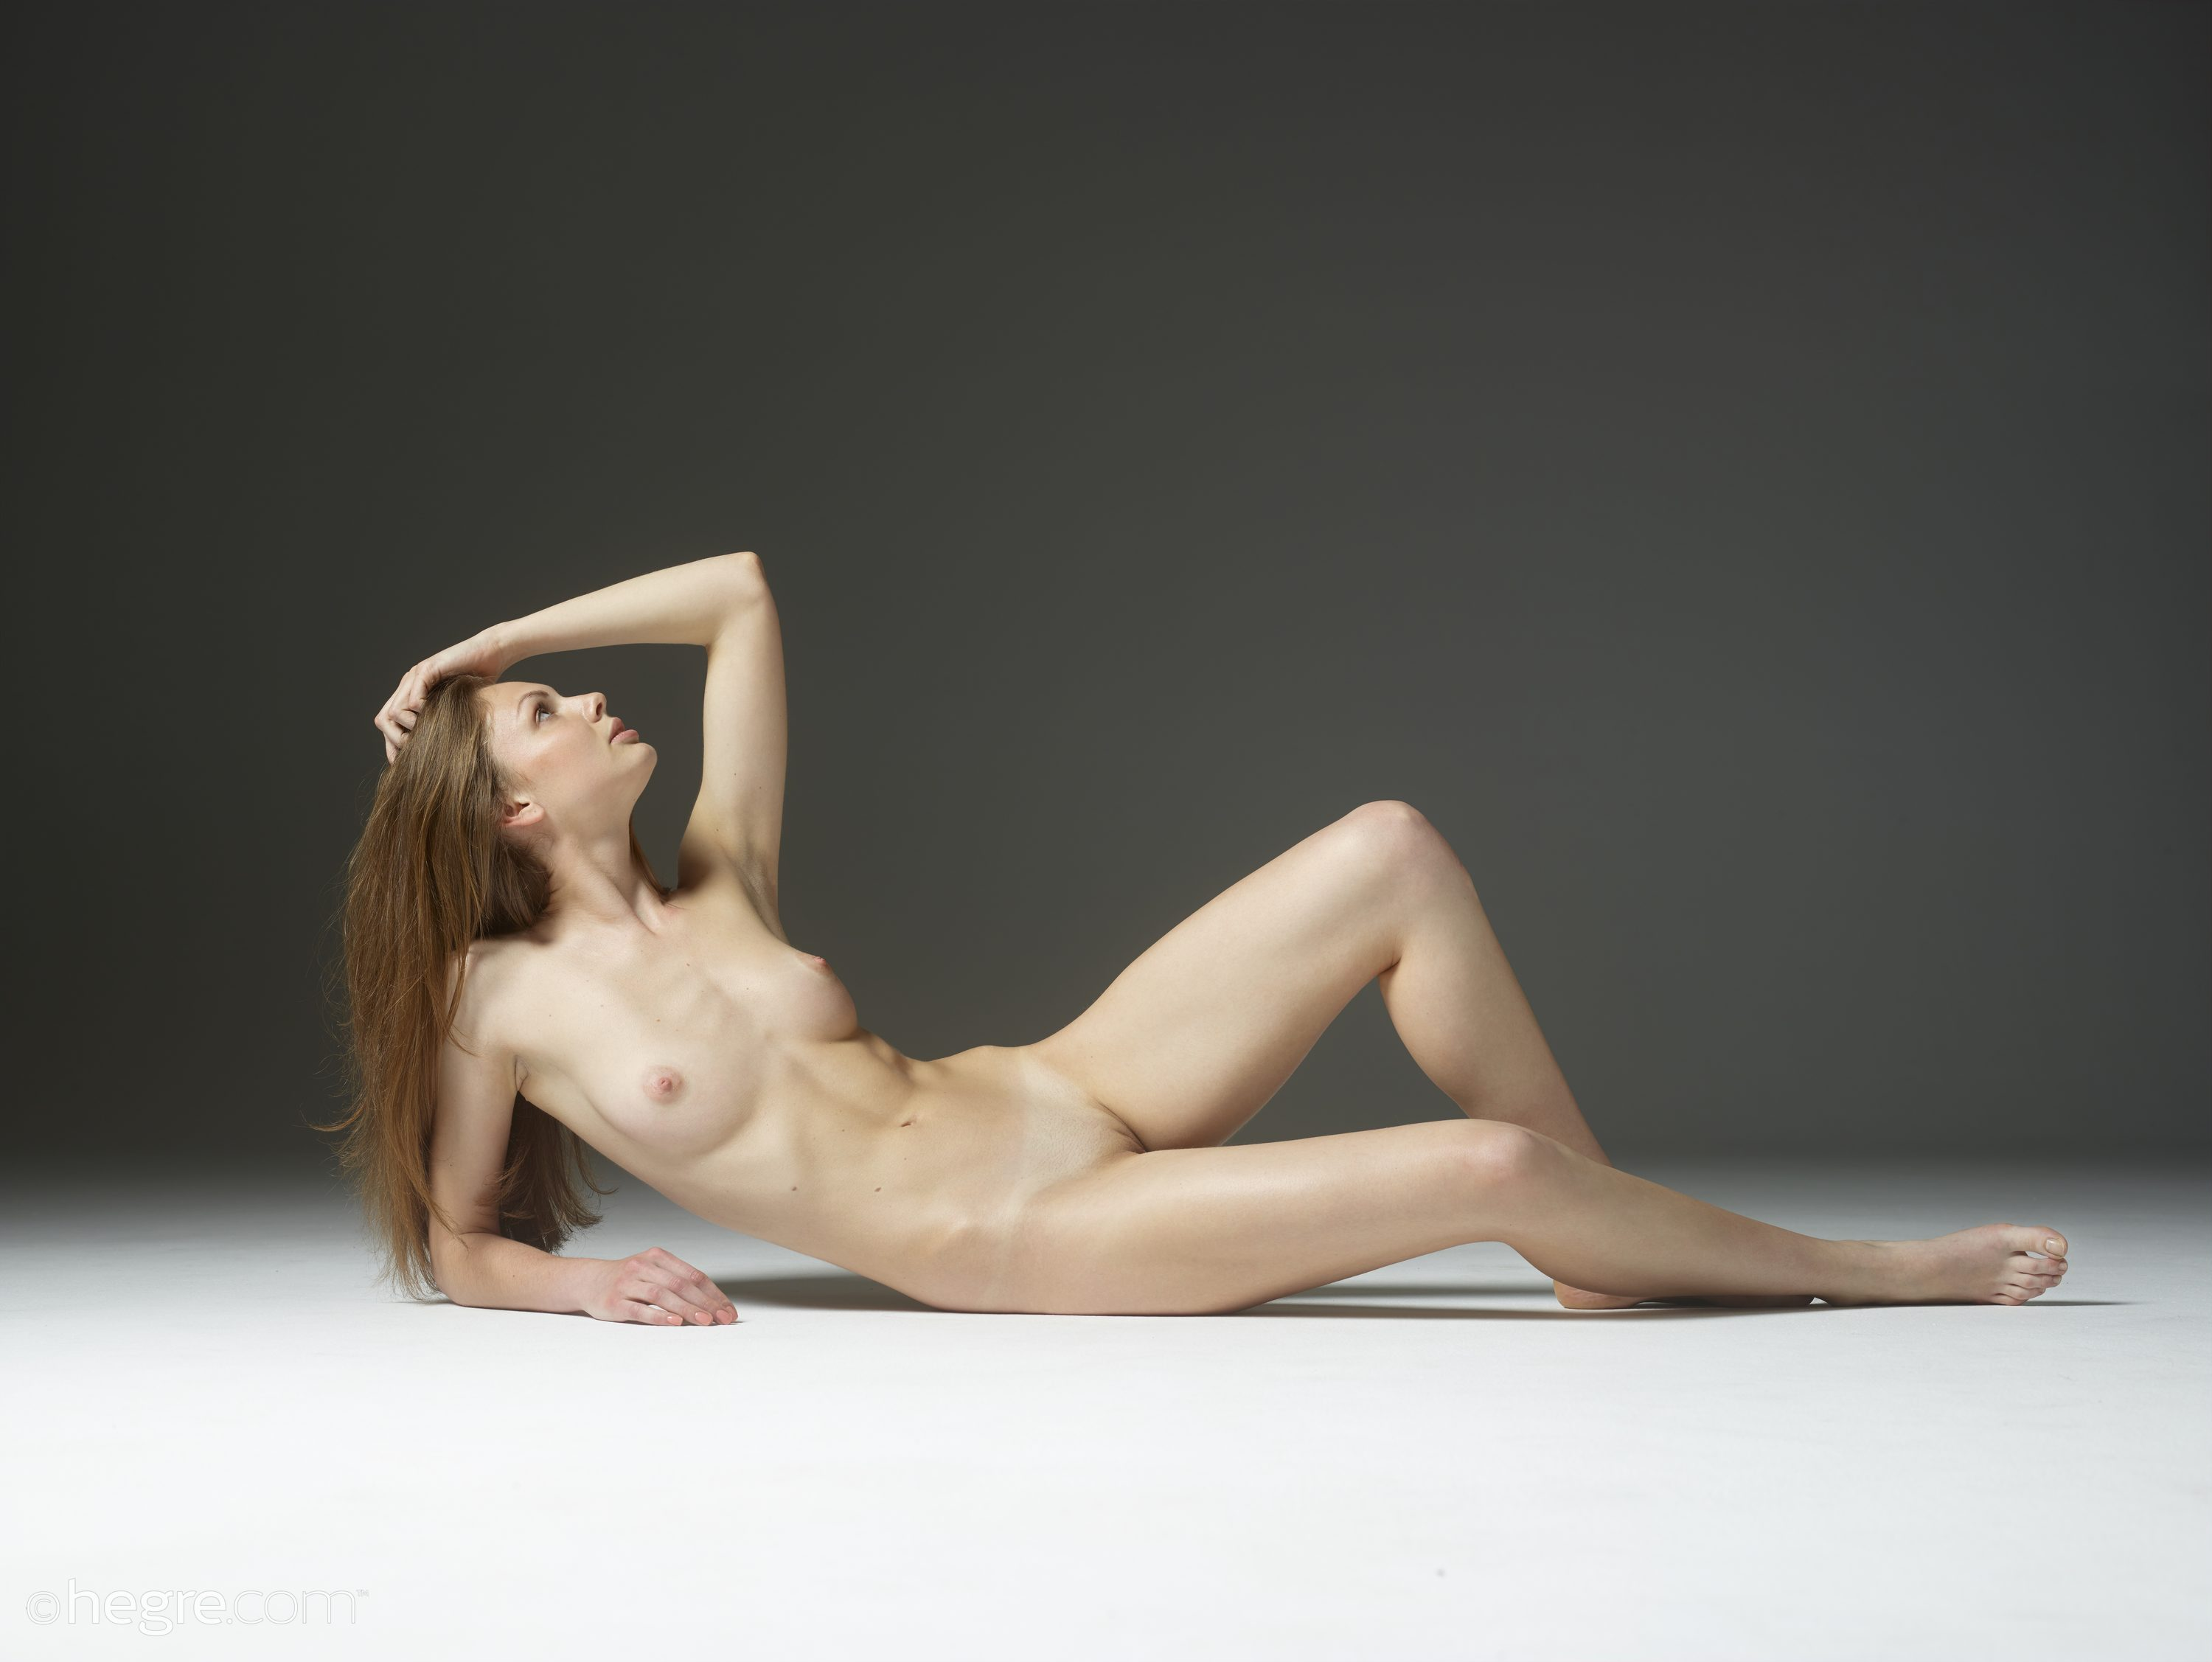 Hot Skinny Girl Naked